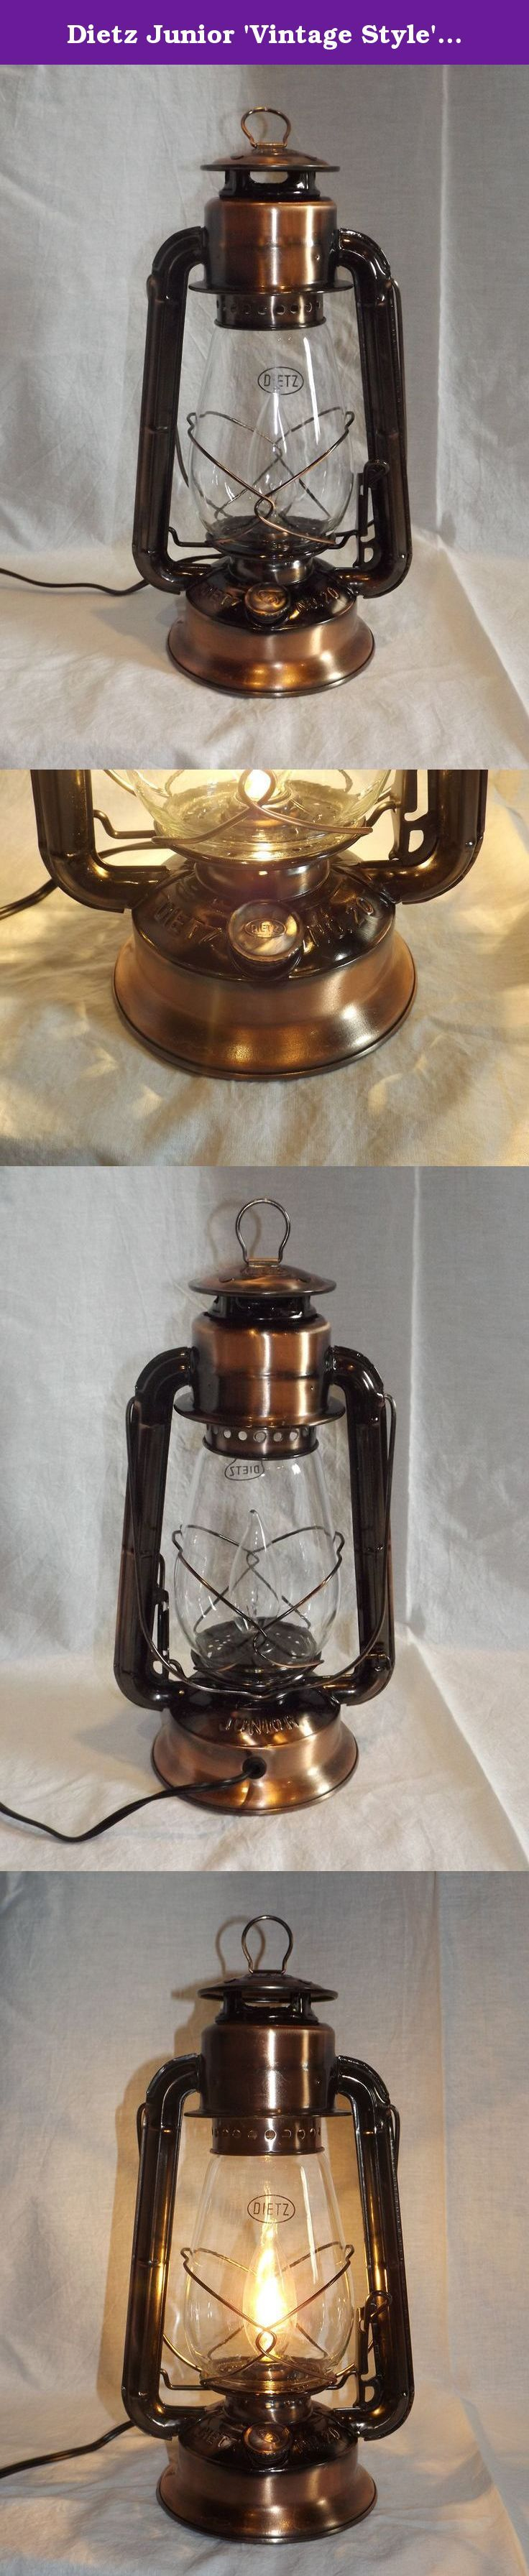 "Dietz Junior 'Vintage Style' Electric Lantern Table Lamp - Copper Bronze. Enjoy the glow of kerosene lantern lighting without the kerosene! Electric Lantern lighting provides safe, vintage style lighting without the mess or smell of kerosene oil. This Dietz Junior electric lantern lamp is 12"" tall (bail down) with a 5-1/4"" base, featuring a 7 foot electrical cord with in-line rotary on-off switch and replaceable candelabra base bulb (60-Watt maximum). This electric lantern lamp has been..."